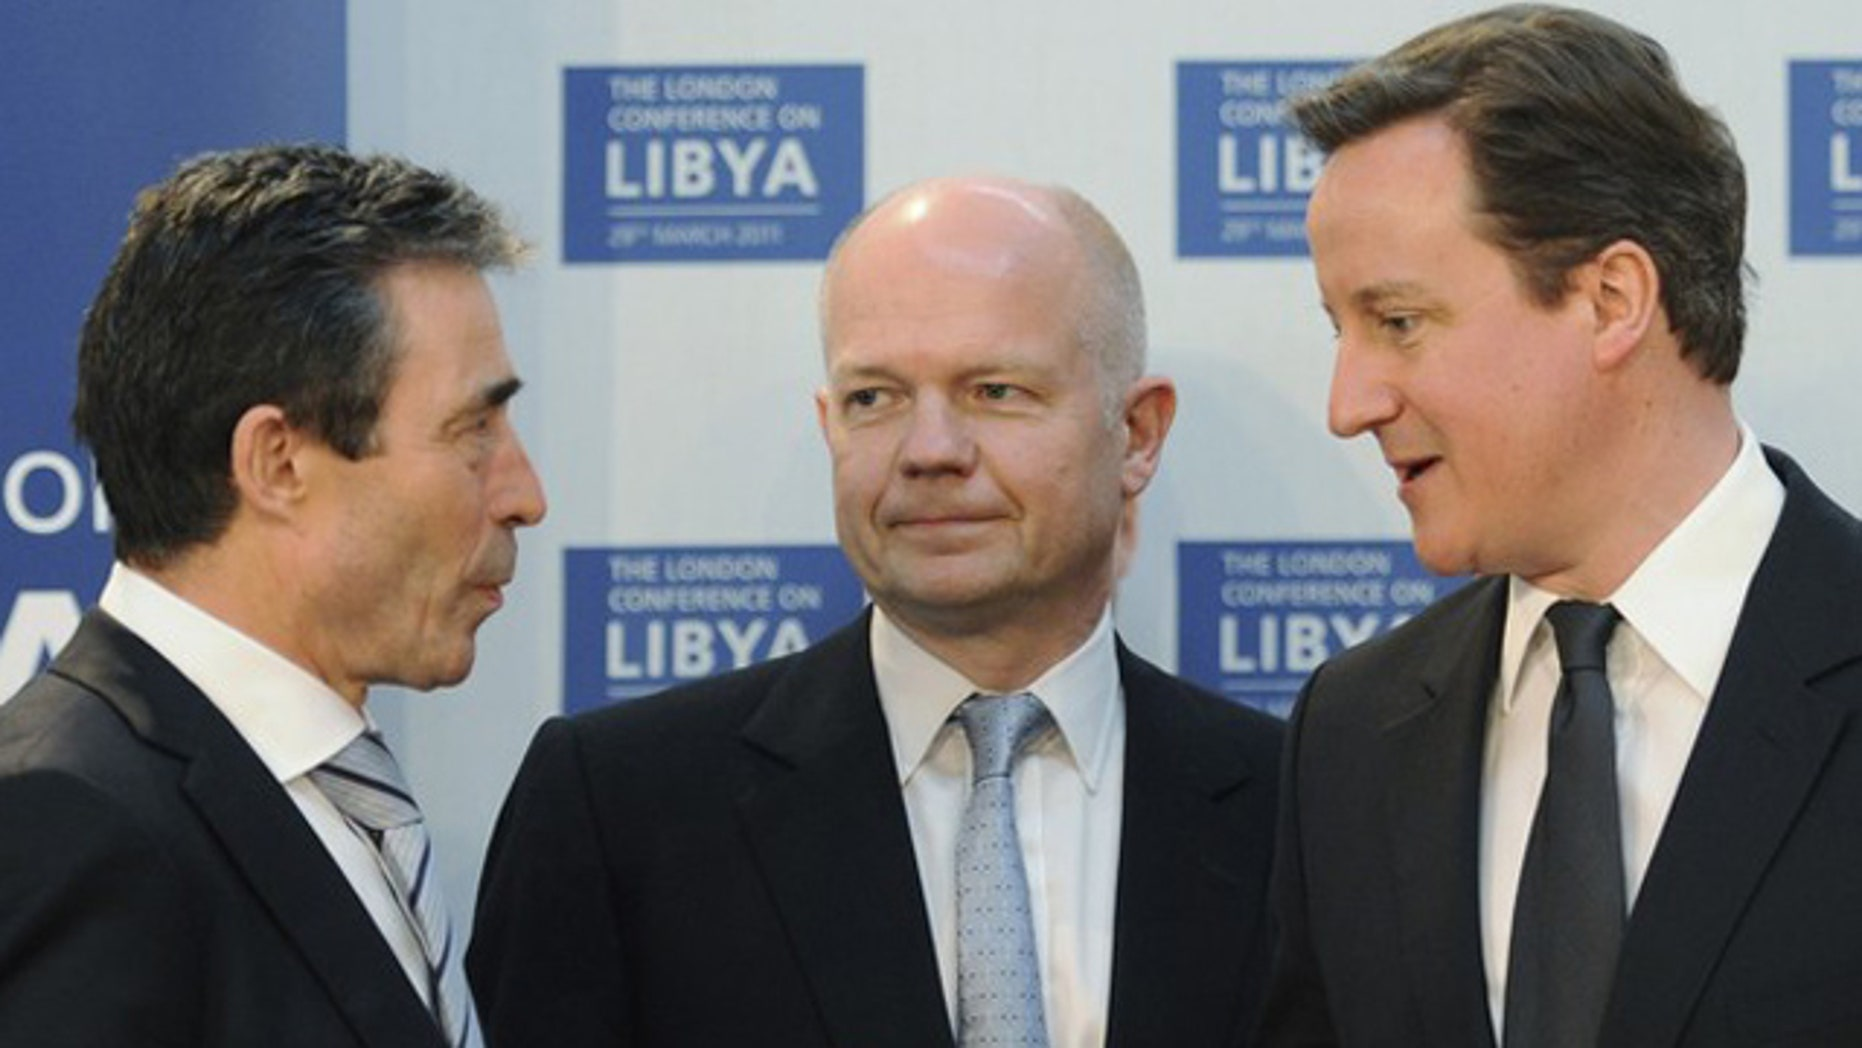 March 29: Britain's Prime Minister David Cameron (R) speaks to NATO Secretary General Anders Fogh Rasmussen (L), watched by Foreign Secretary William Hague, at the Foreign & Commonwealth Office in London.